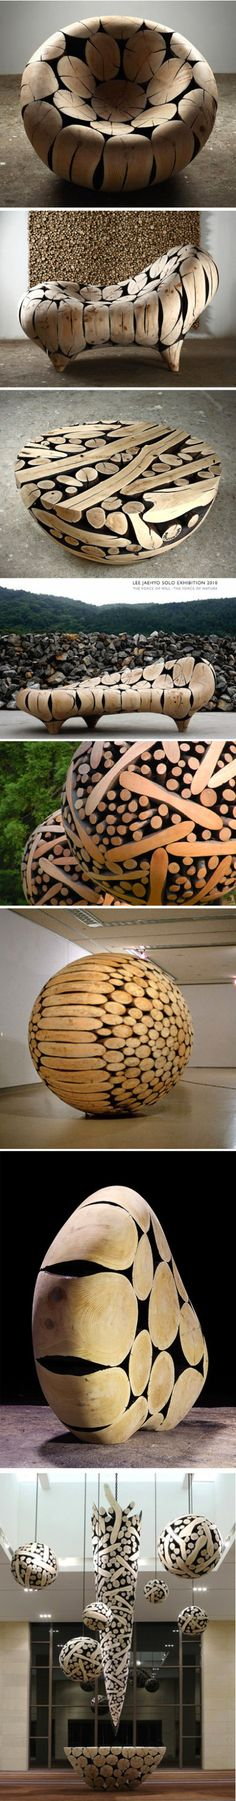 Sculptures of Korean artist Lee Jae-Hyo (Jaehyo Lee 1965 -). Timber production, both natural feeling, at the same time strengthen the simple geometric beauty